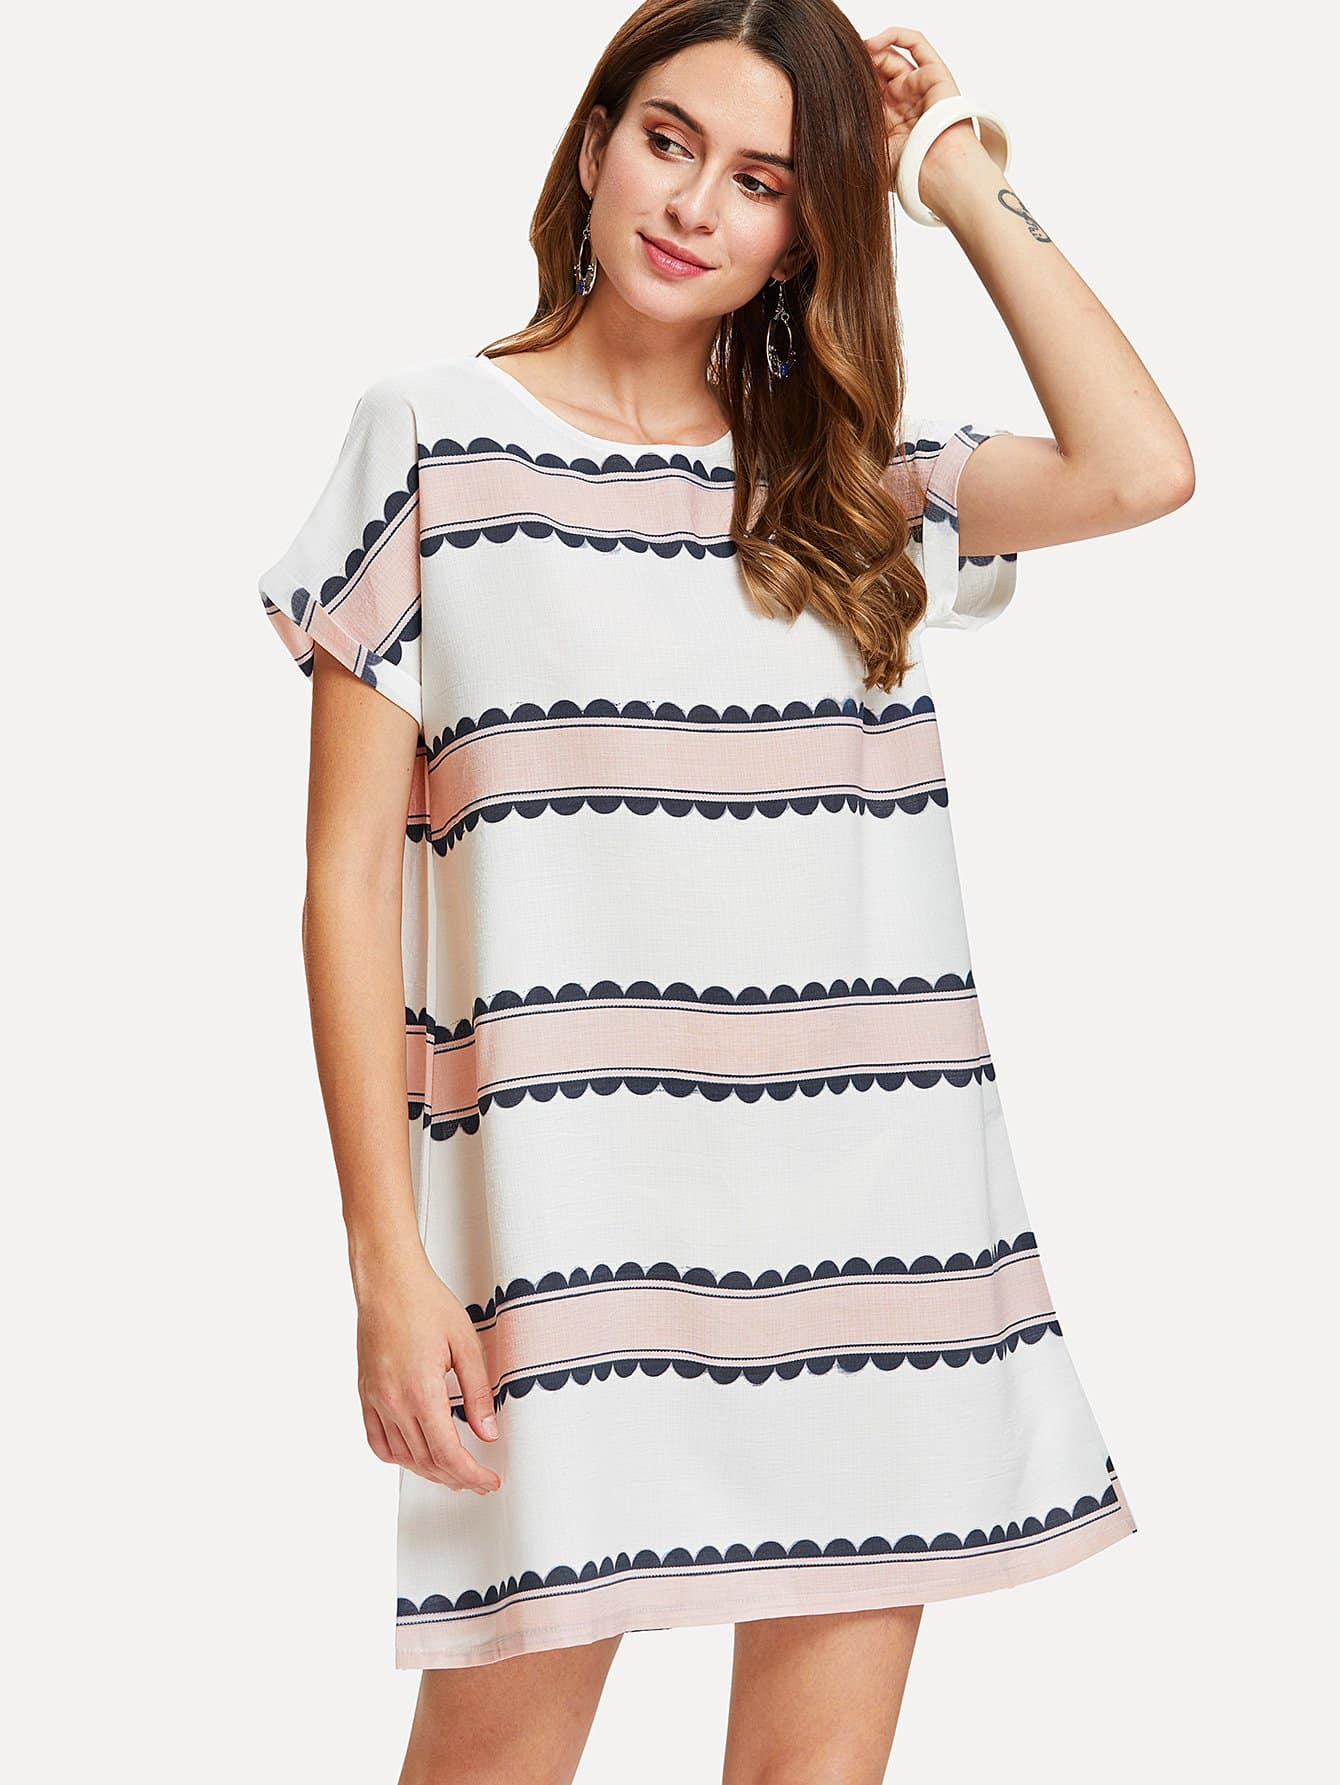 Contrast Striped Dress contrast striped single breasted dress